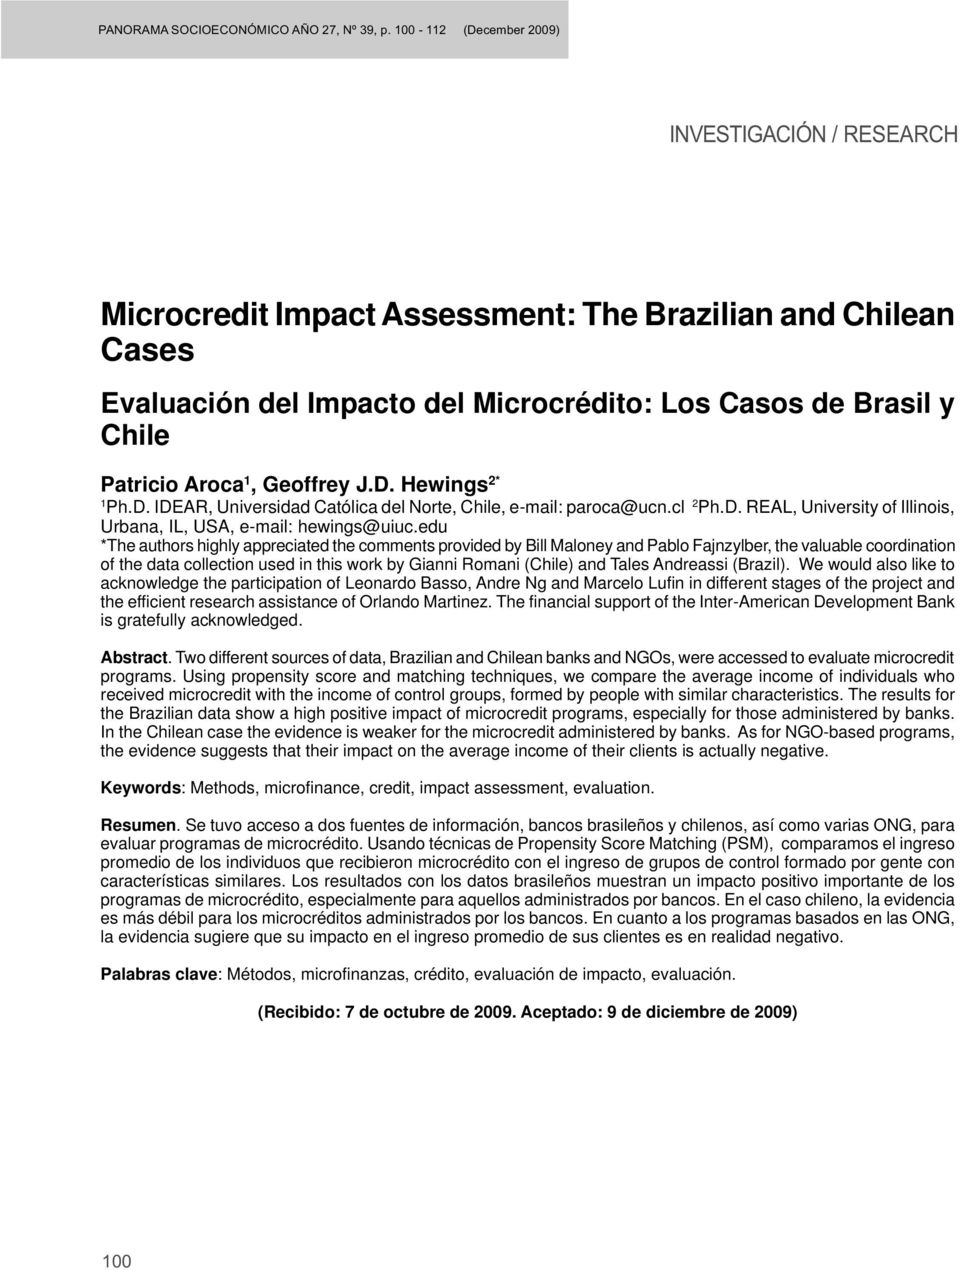 edu *The authors highly appreciated the comments provided by Bill Maloney and Pablo Fajnzylber, the valuable coordination of the data collection used in this work by Gianni Romani (Chile) and Tales